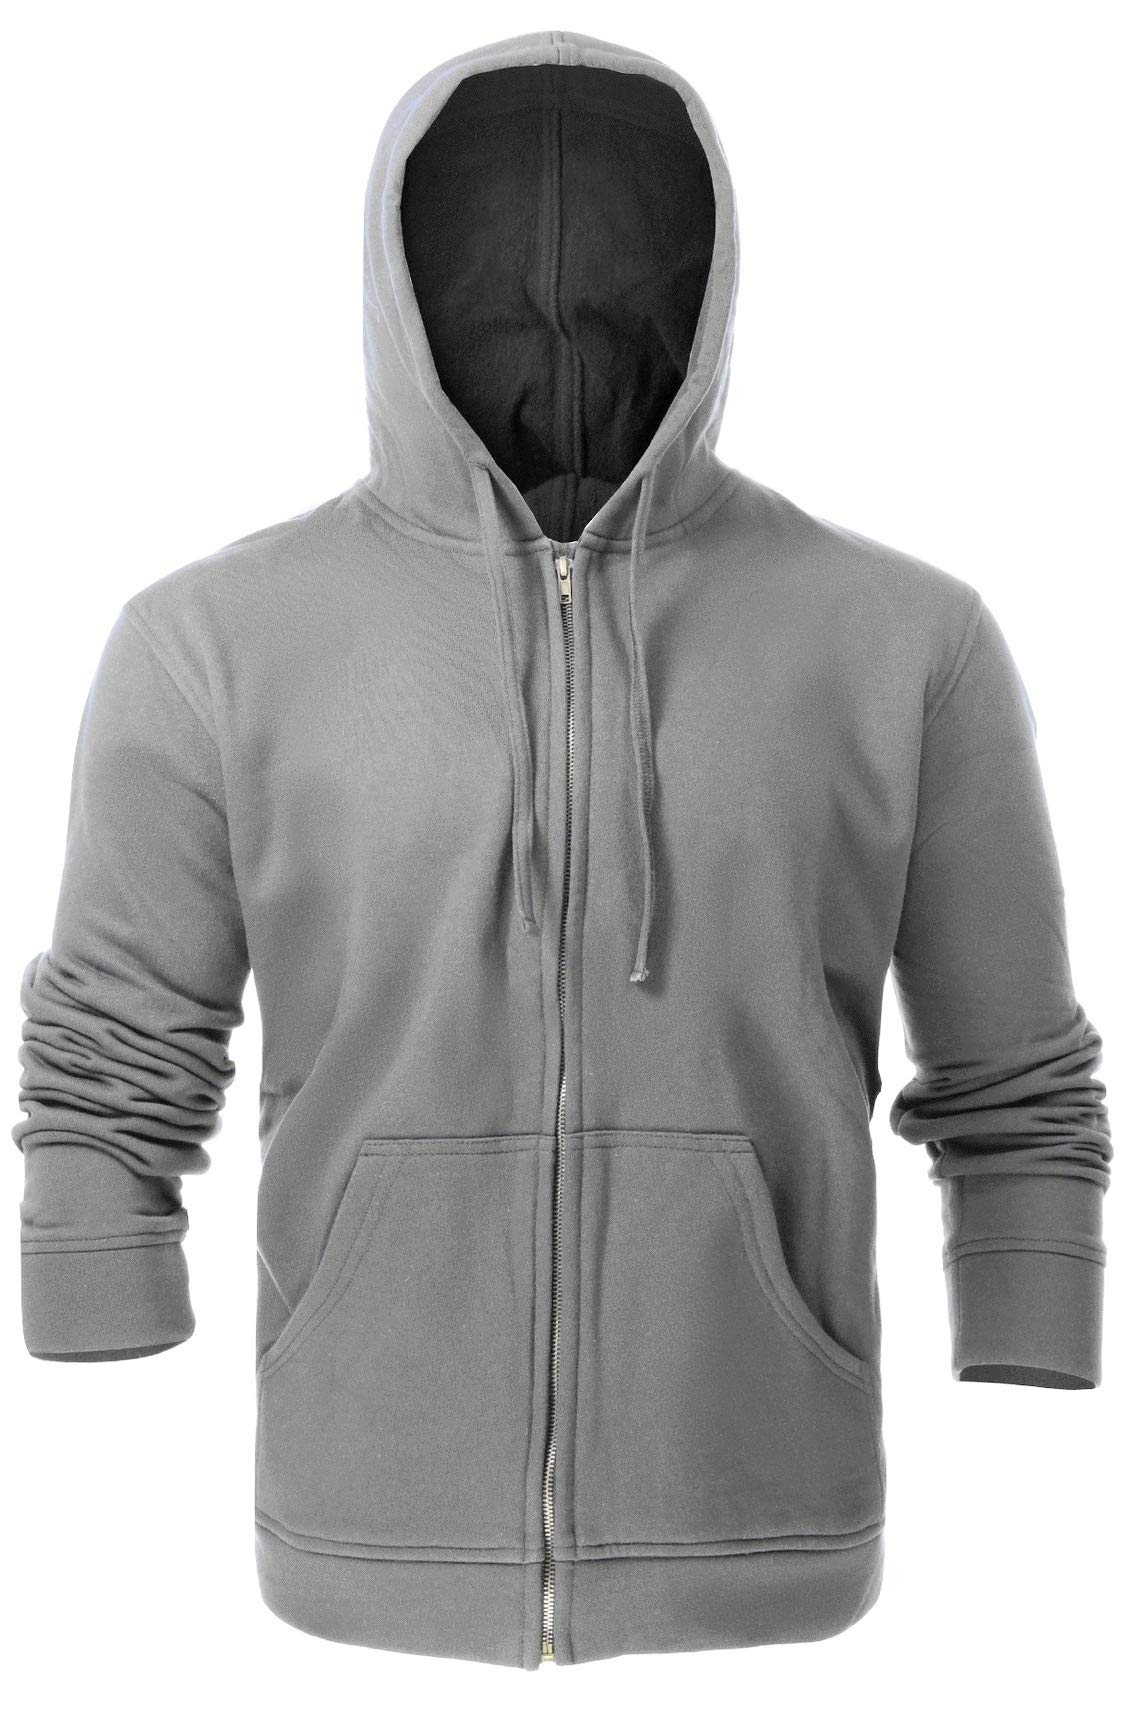 Flame Resistant FR Fleece Hoodies - 100% C - Heavy Weight (X-Large, Light Grey) by Just In Trend